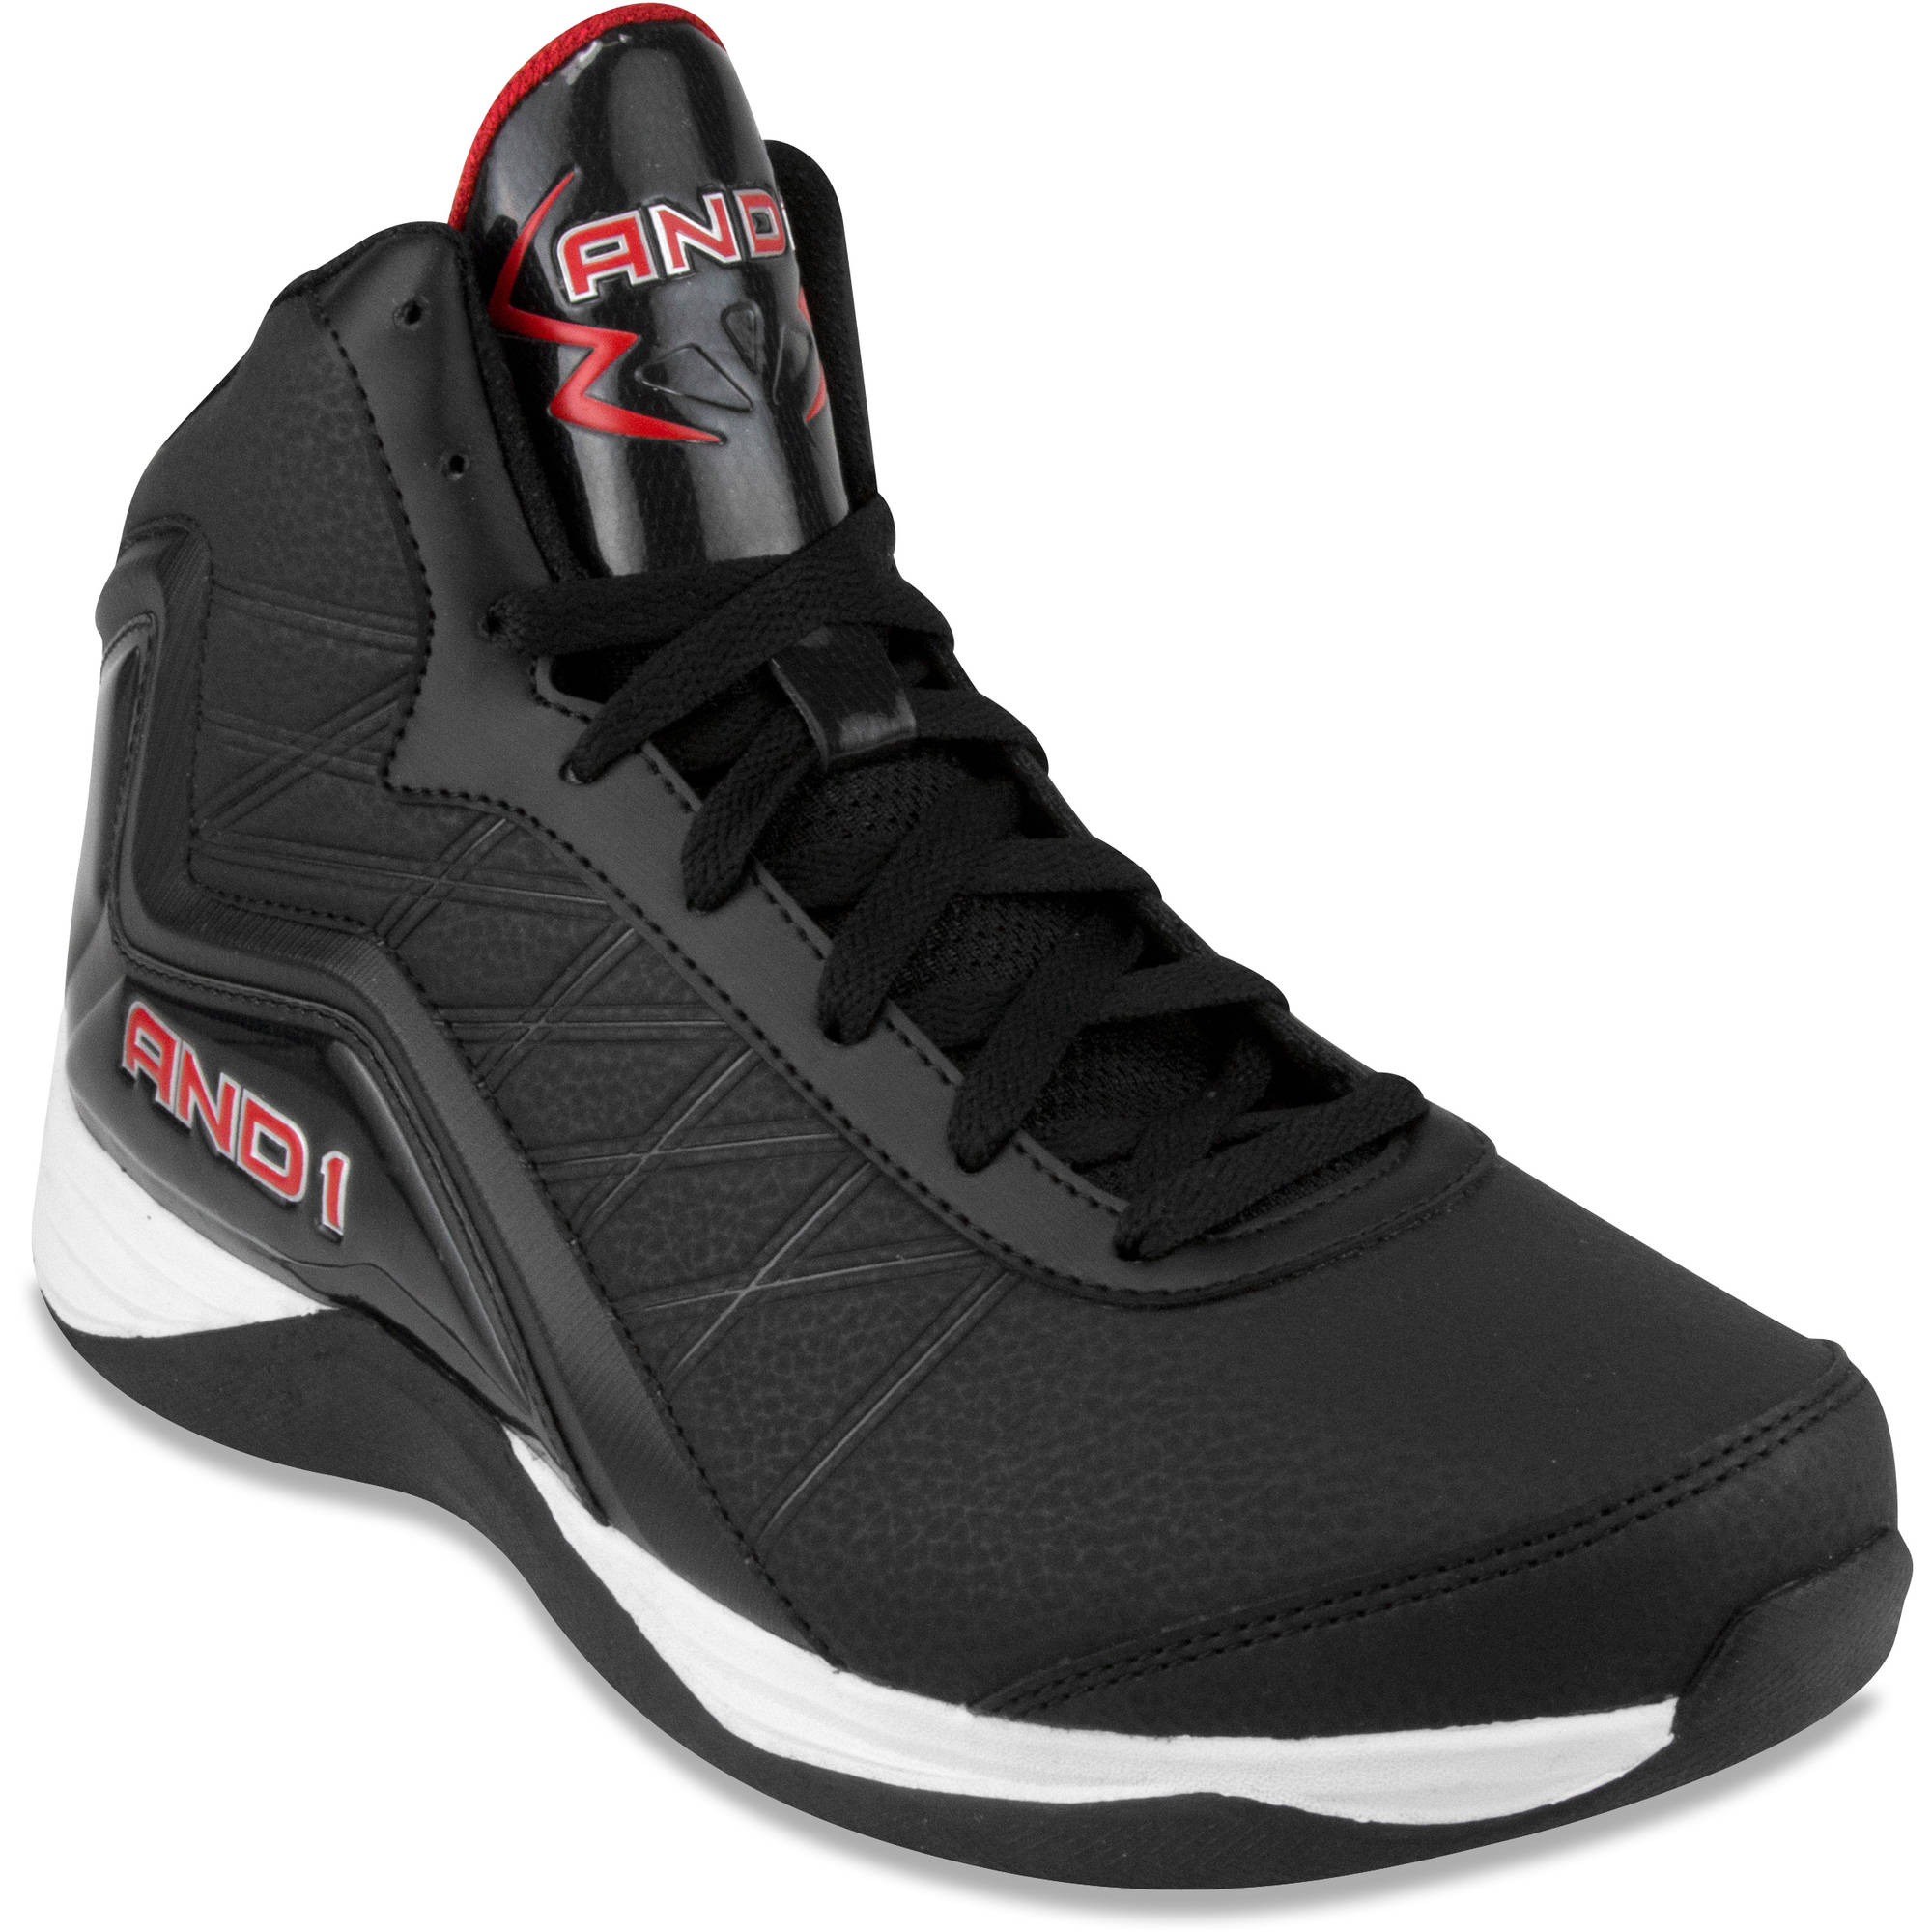 AND1 Men's Playoff Athletic Shoe